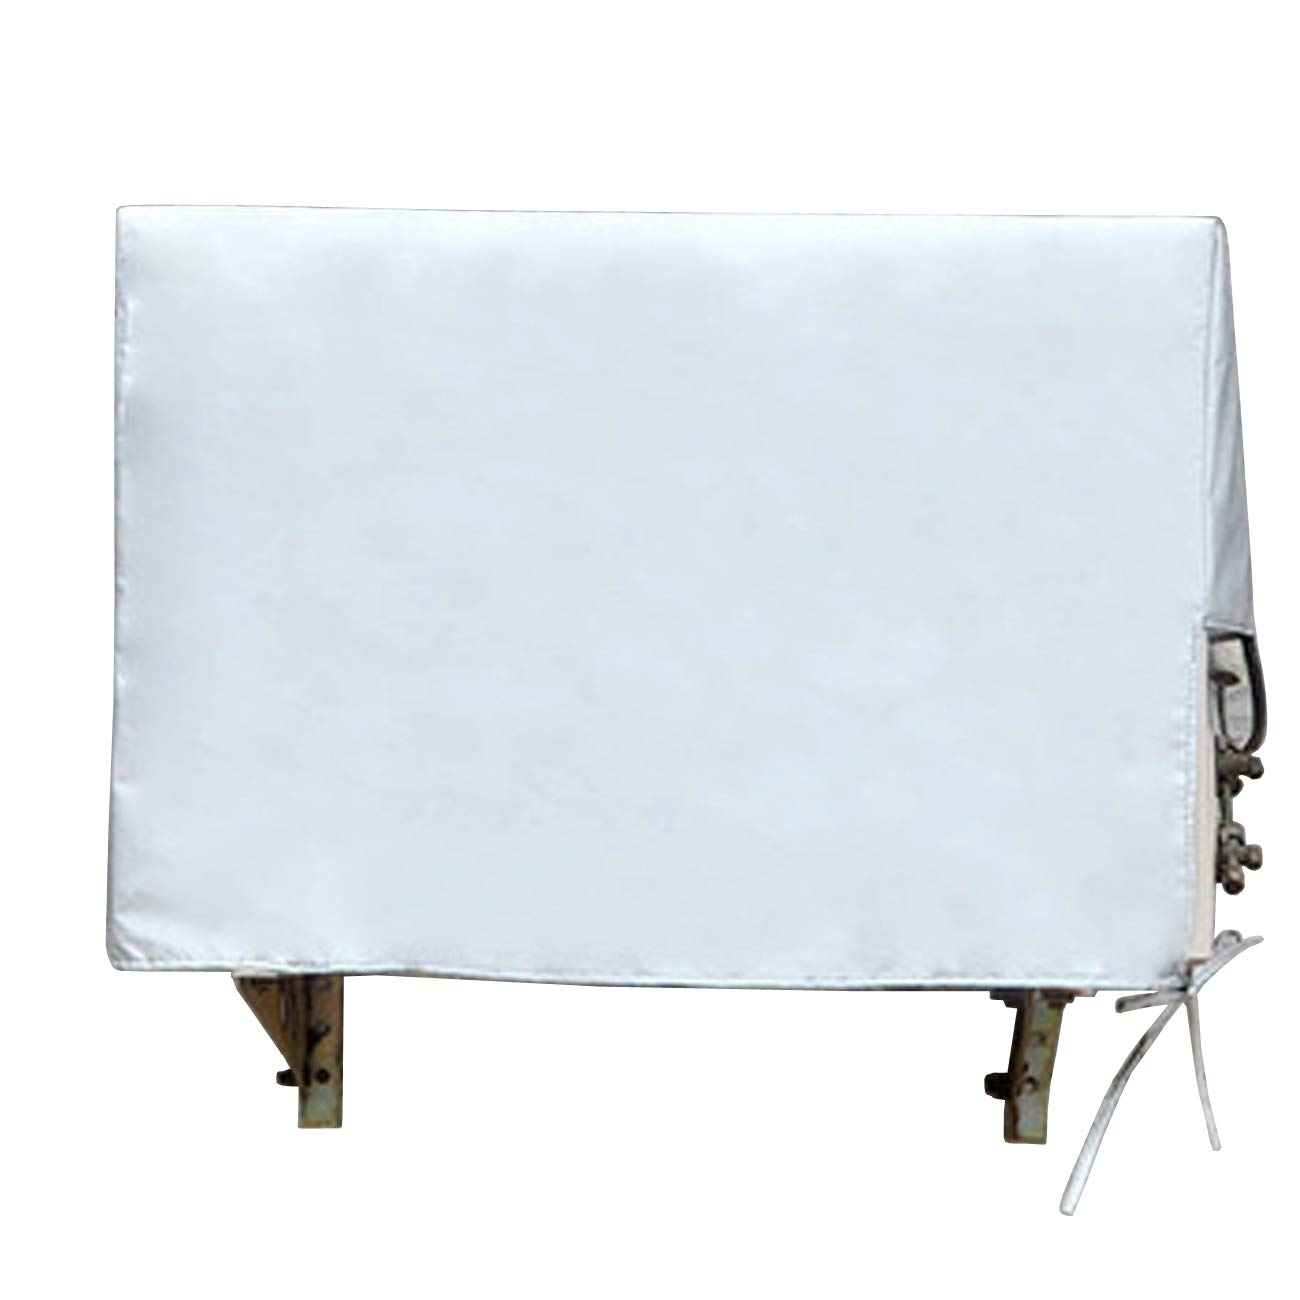 "Ogrmar Outside Window Air Conditioner Unit Cover Waterproof Sunscreen Silver Plating. (37"" x 16.1"" x 27.6"")"